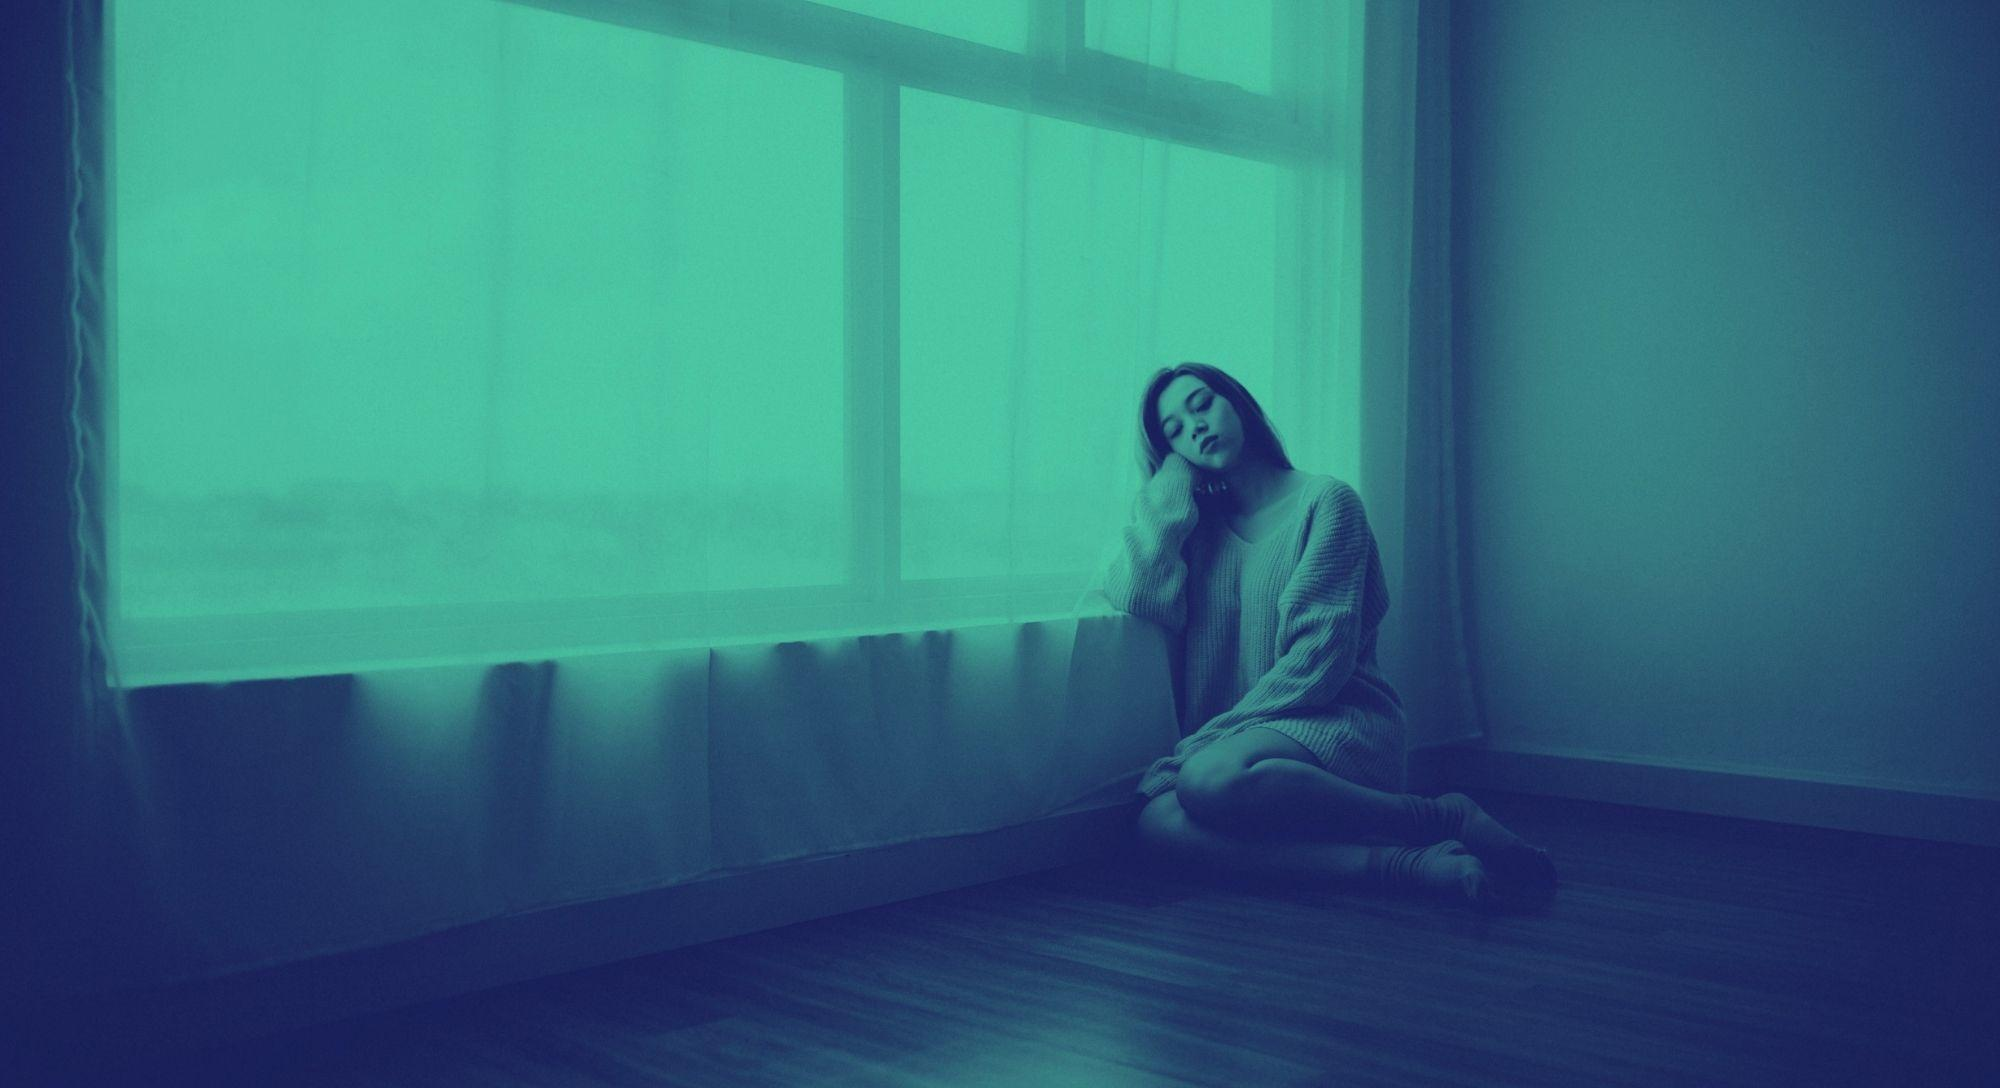 How to deal with loneliness: 11 key coping strategies